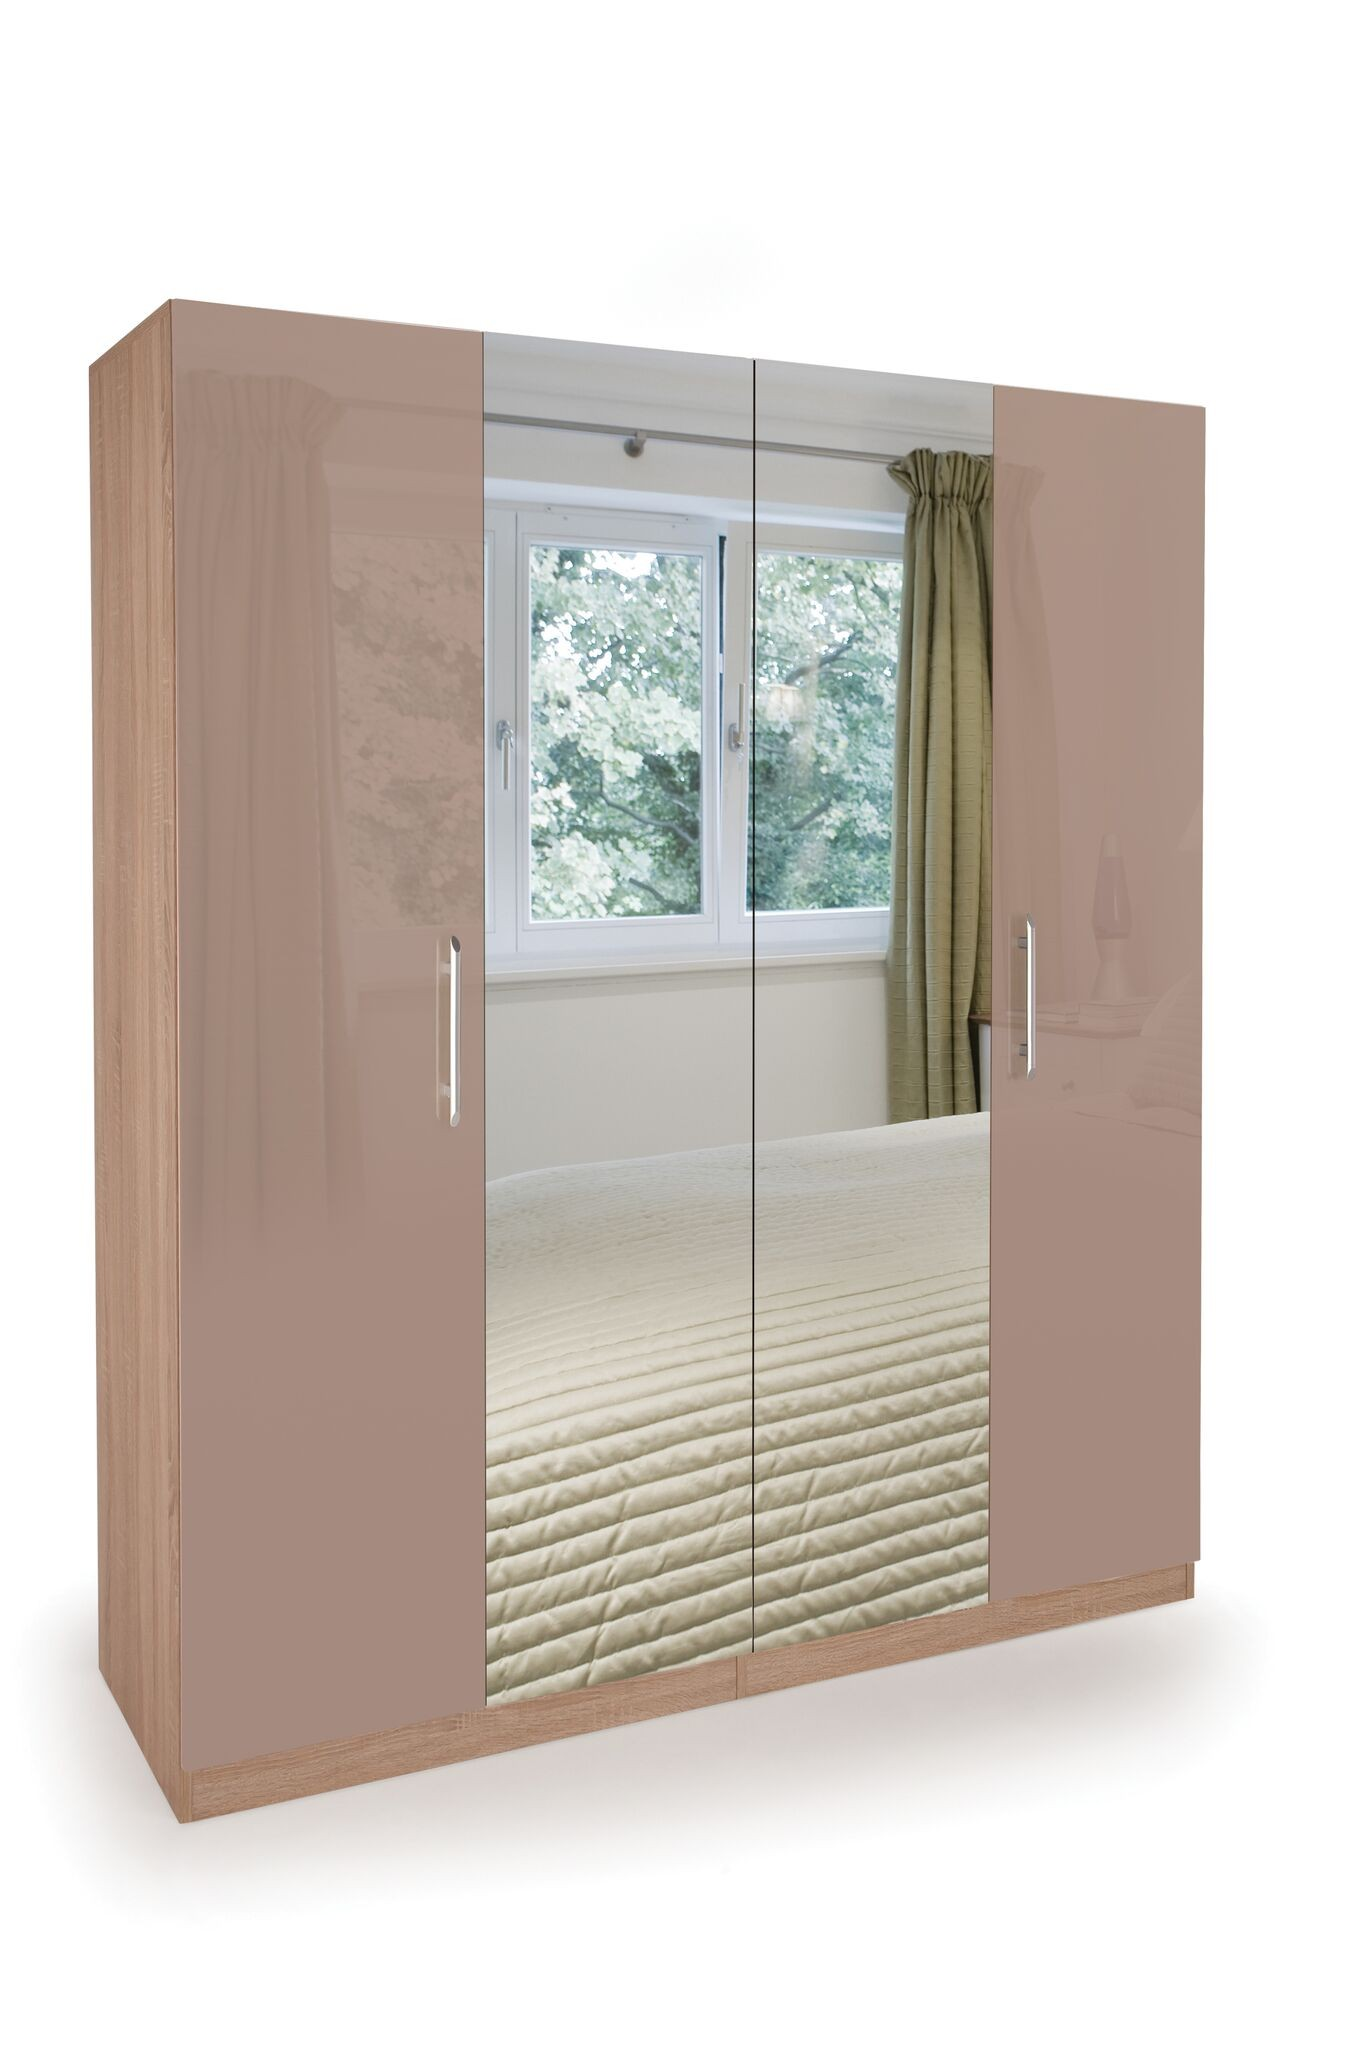 Coral Gloss Quality Bedroom Double Mirror Wardrobe - Oak Frame High Gloss Mocha Doors